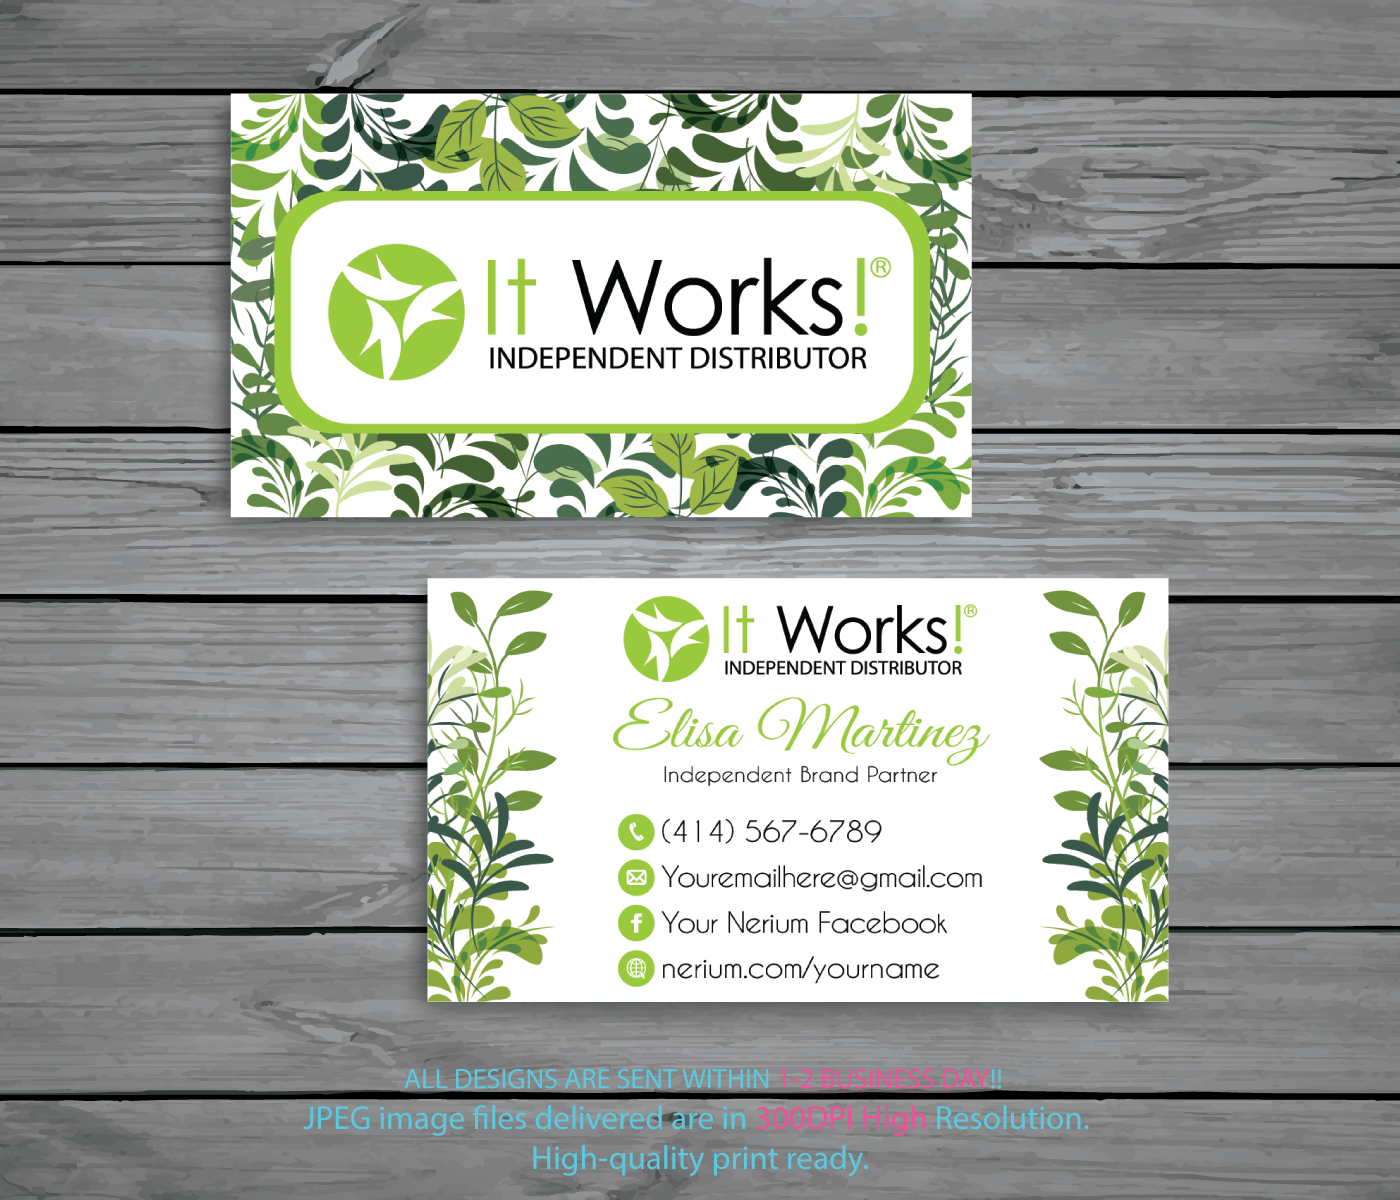 Personalized It Works Business Cards Green Independent Distributor IW03b By Digitalart 1000 USD